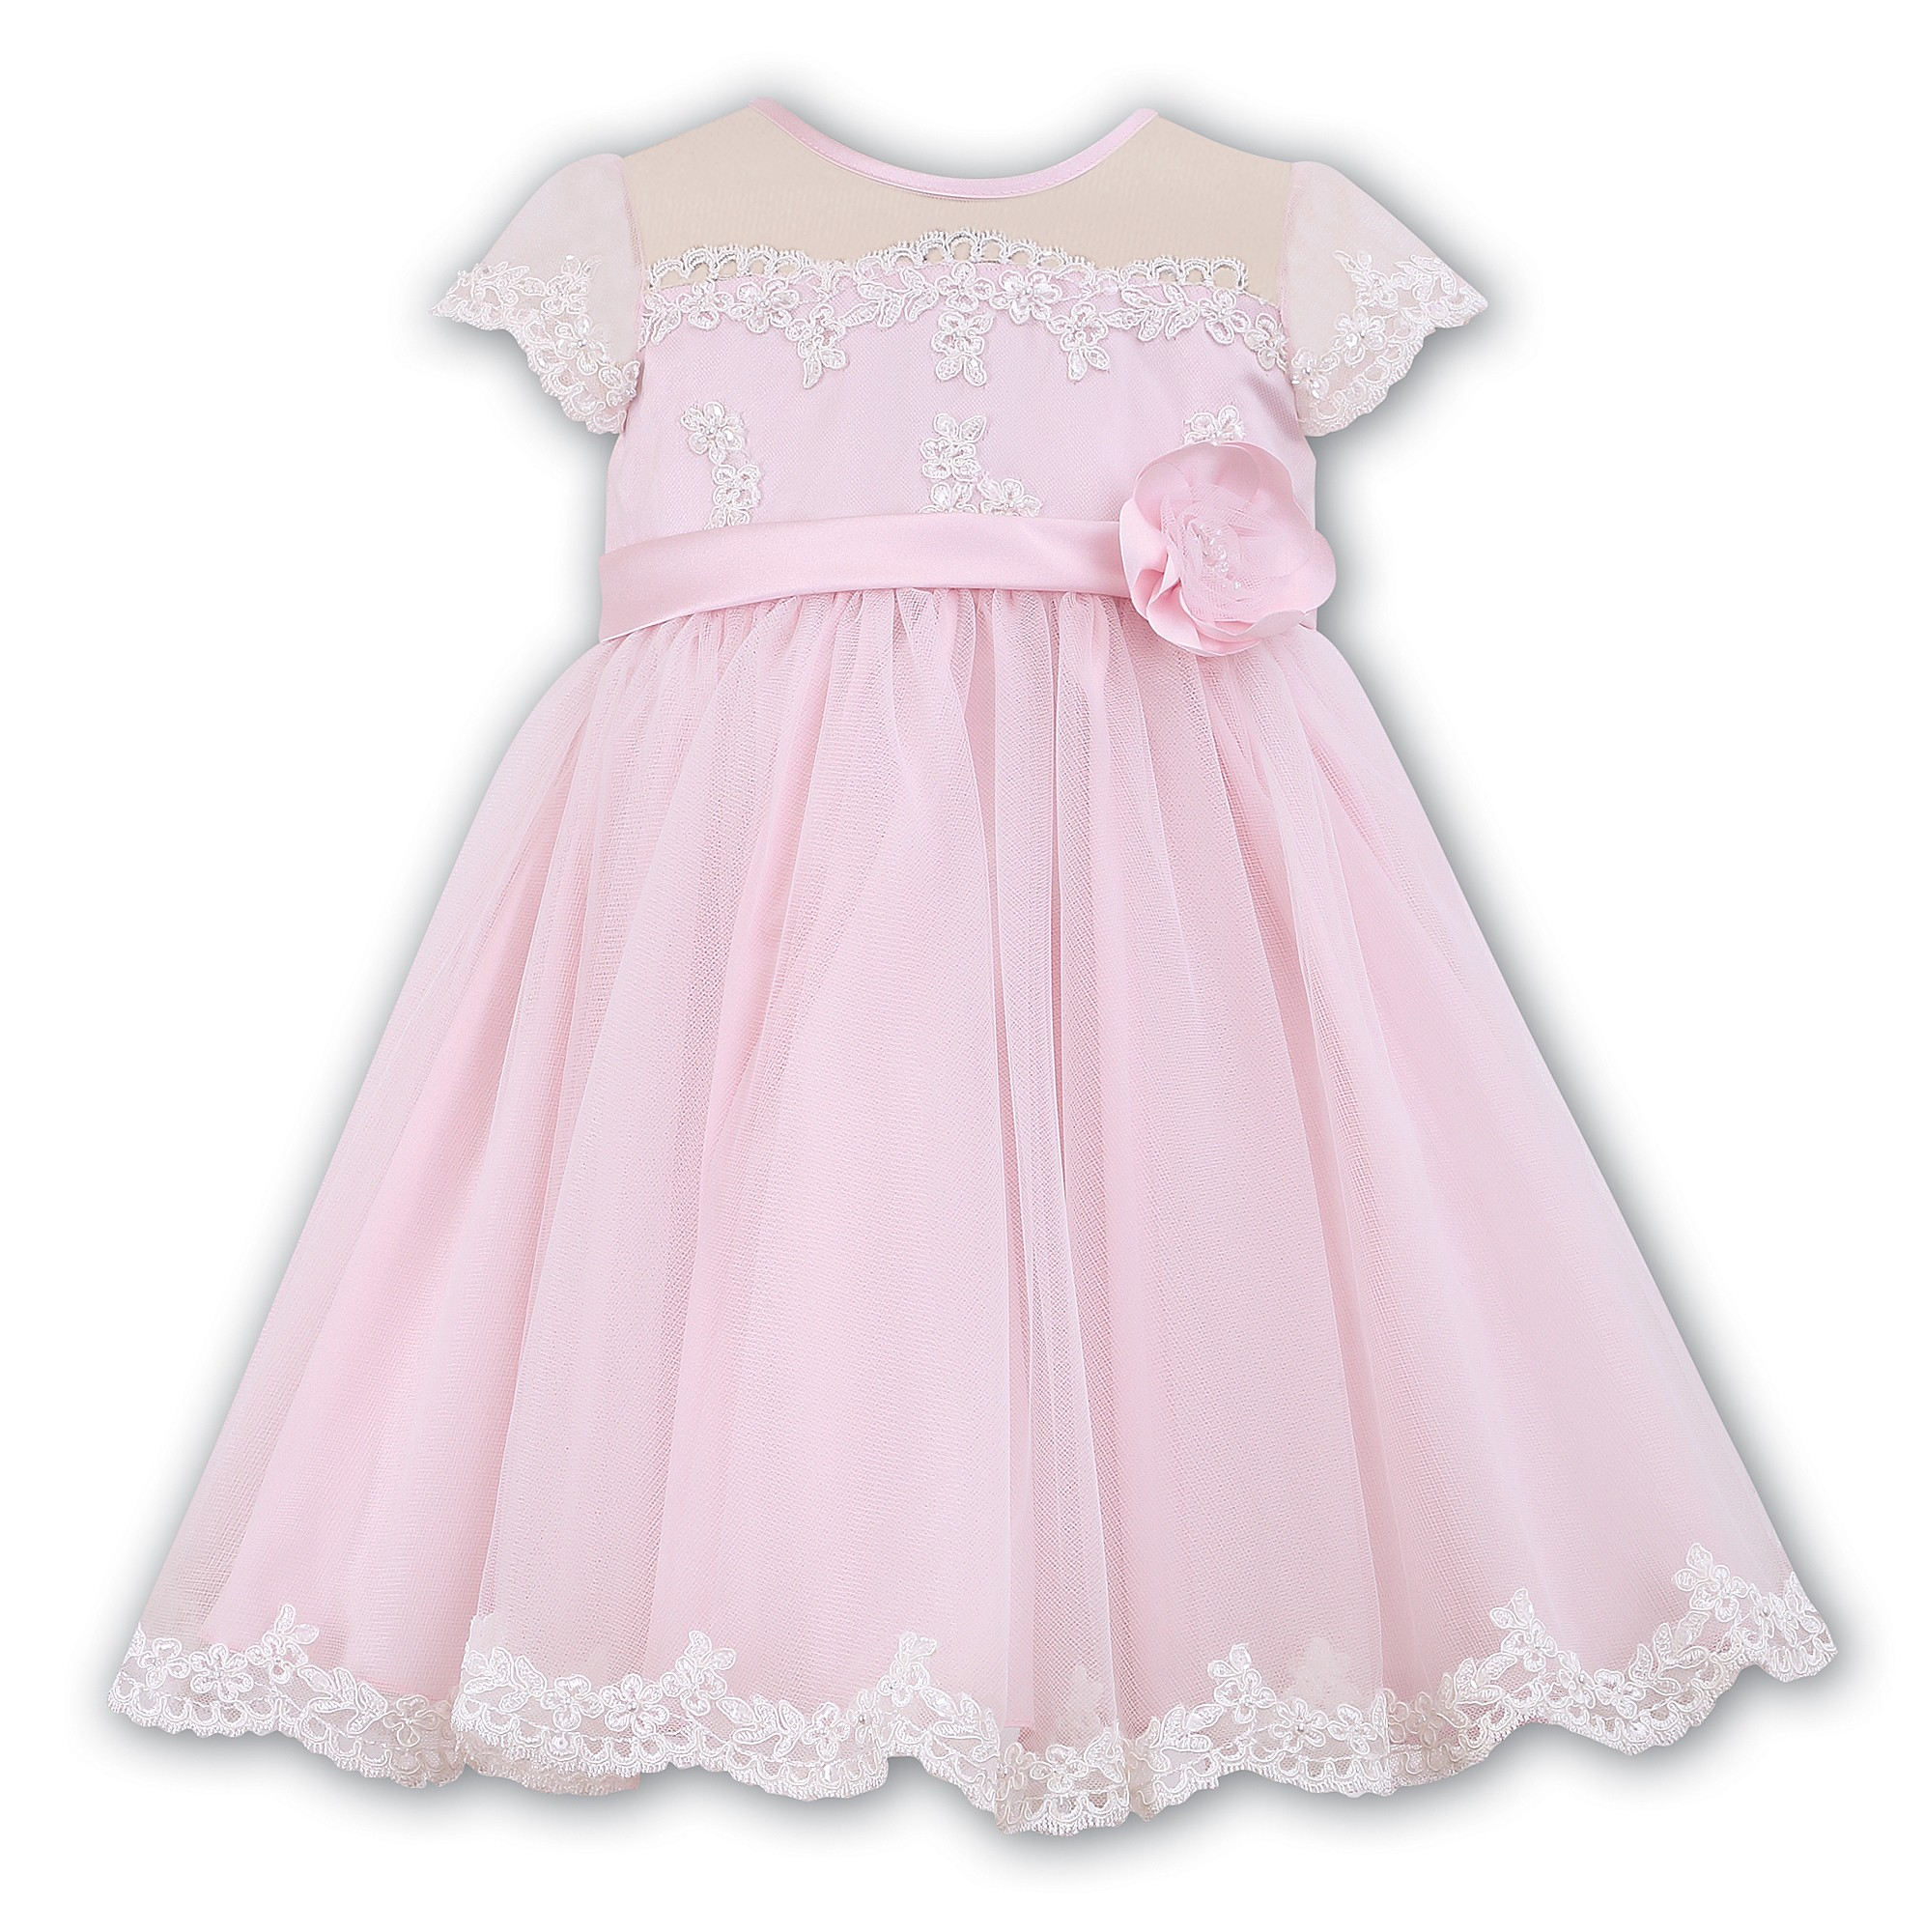 62f7eddd1 Toddler Girl Special Occasion Dresses